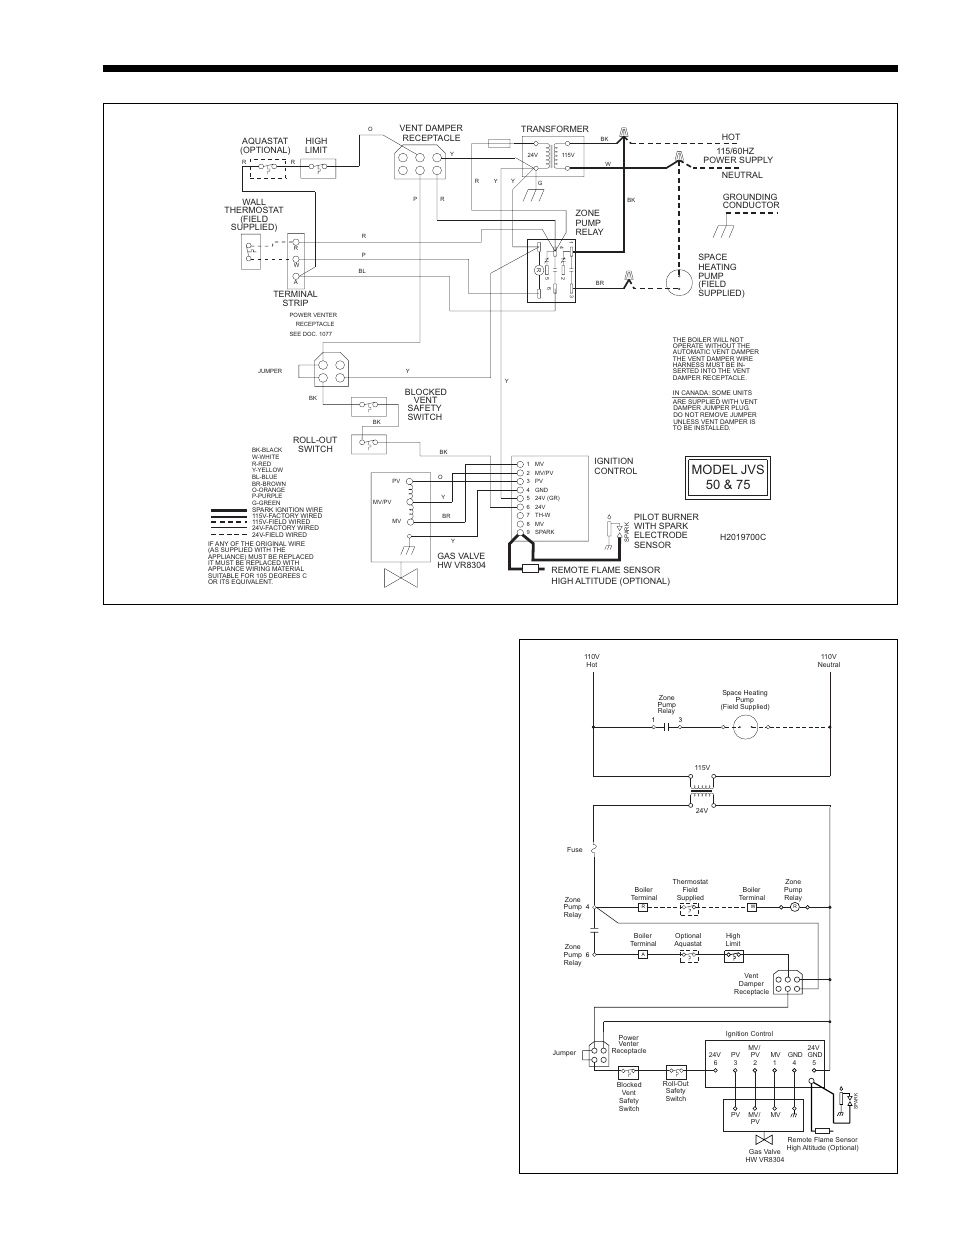 Honeywell L4064b Wiring Diagram 31 Images 100 150 50 Combination Furnace Laars Mini Therm Ii Jvt Sizes 225 Install And Operating Manual Page17resize